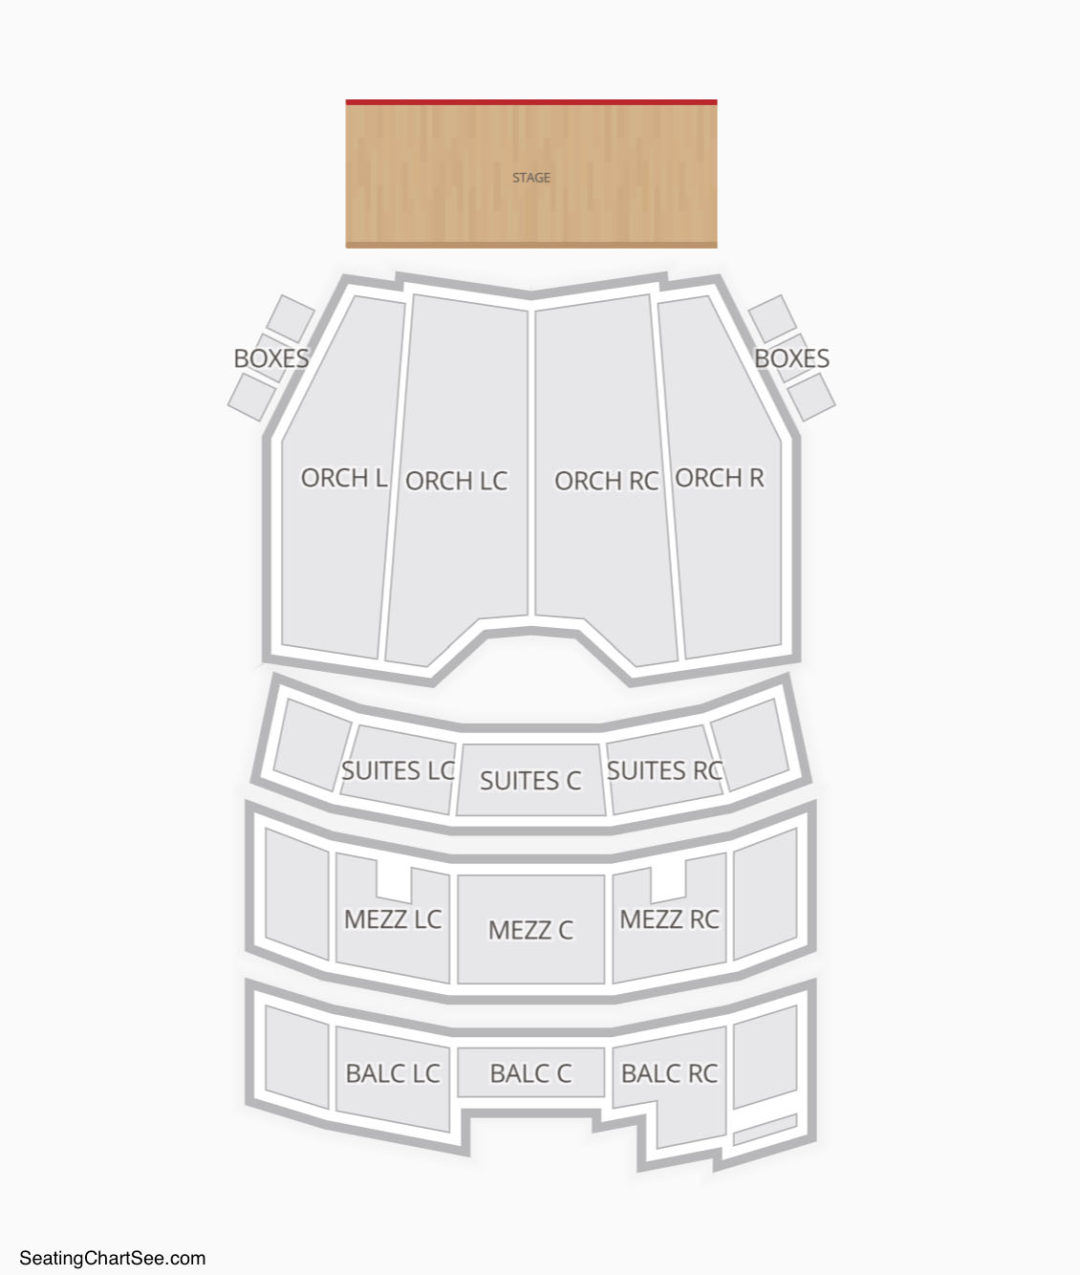 Majestic Theatre San Antonio Seating Chart Seating